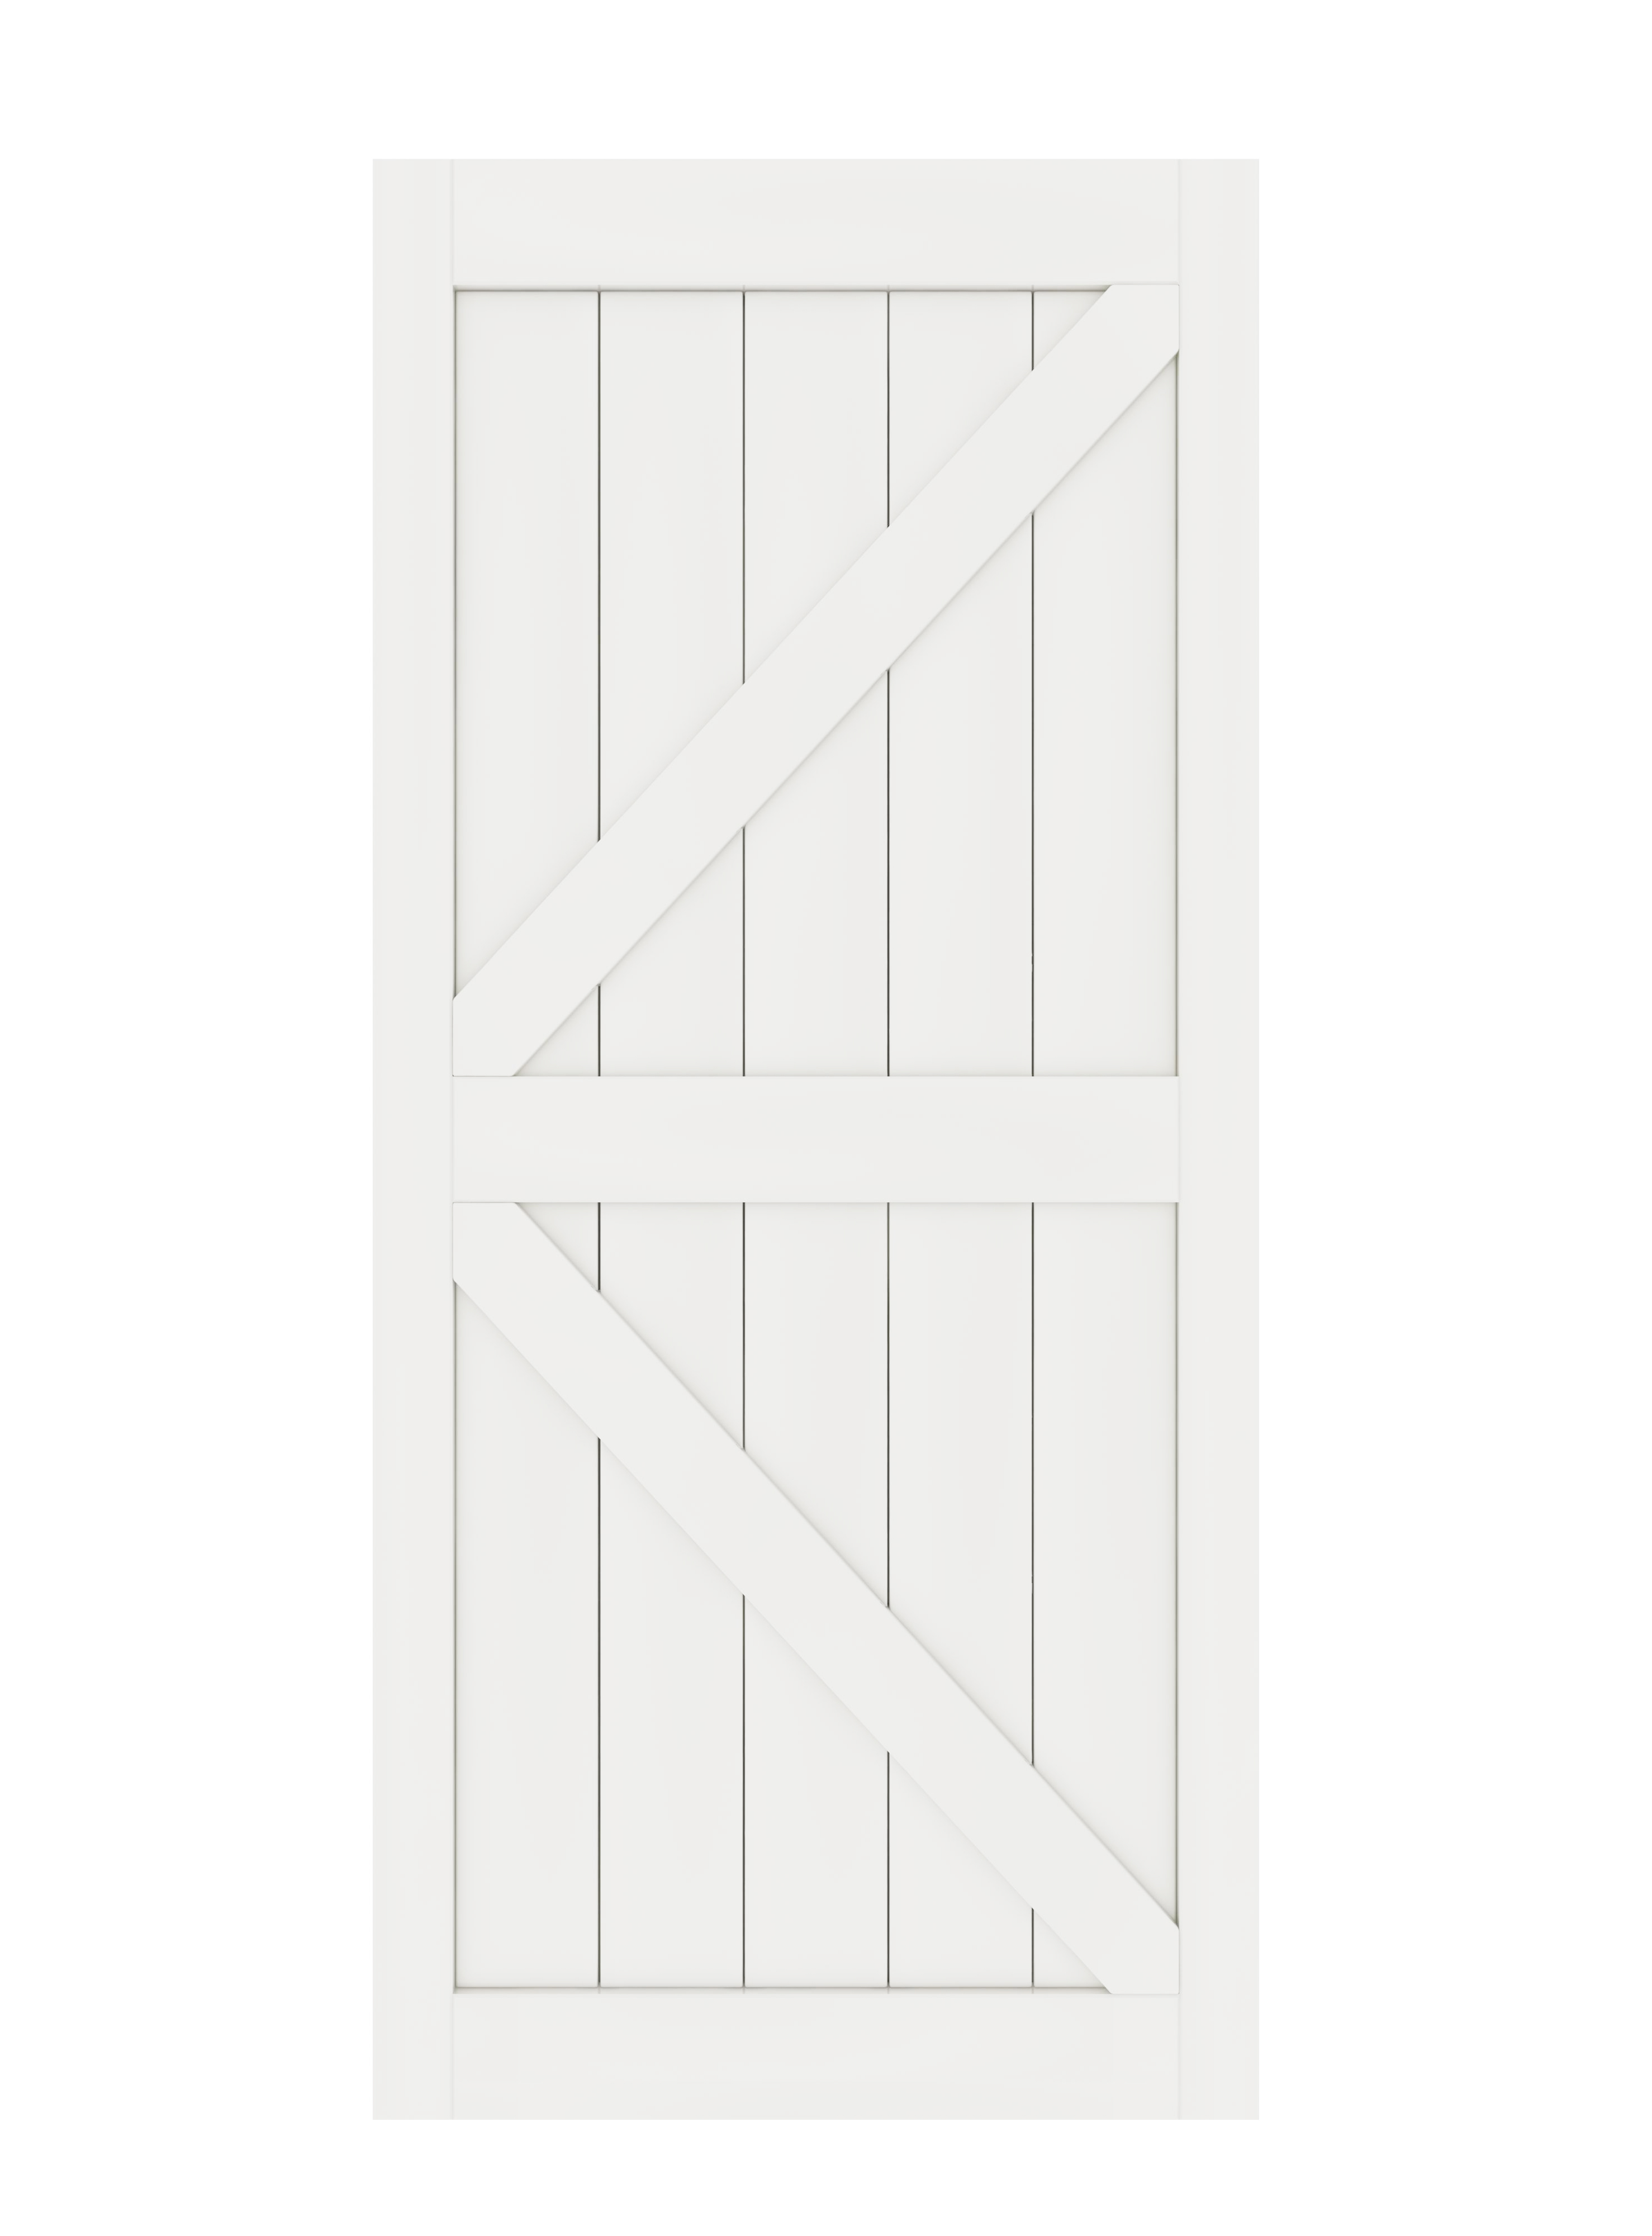 DIYHD Solid Core Wood Door Panel MDF Primed White Interior Door Panel K Shape Barn Door Slab(Disassembled)